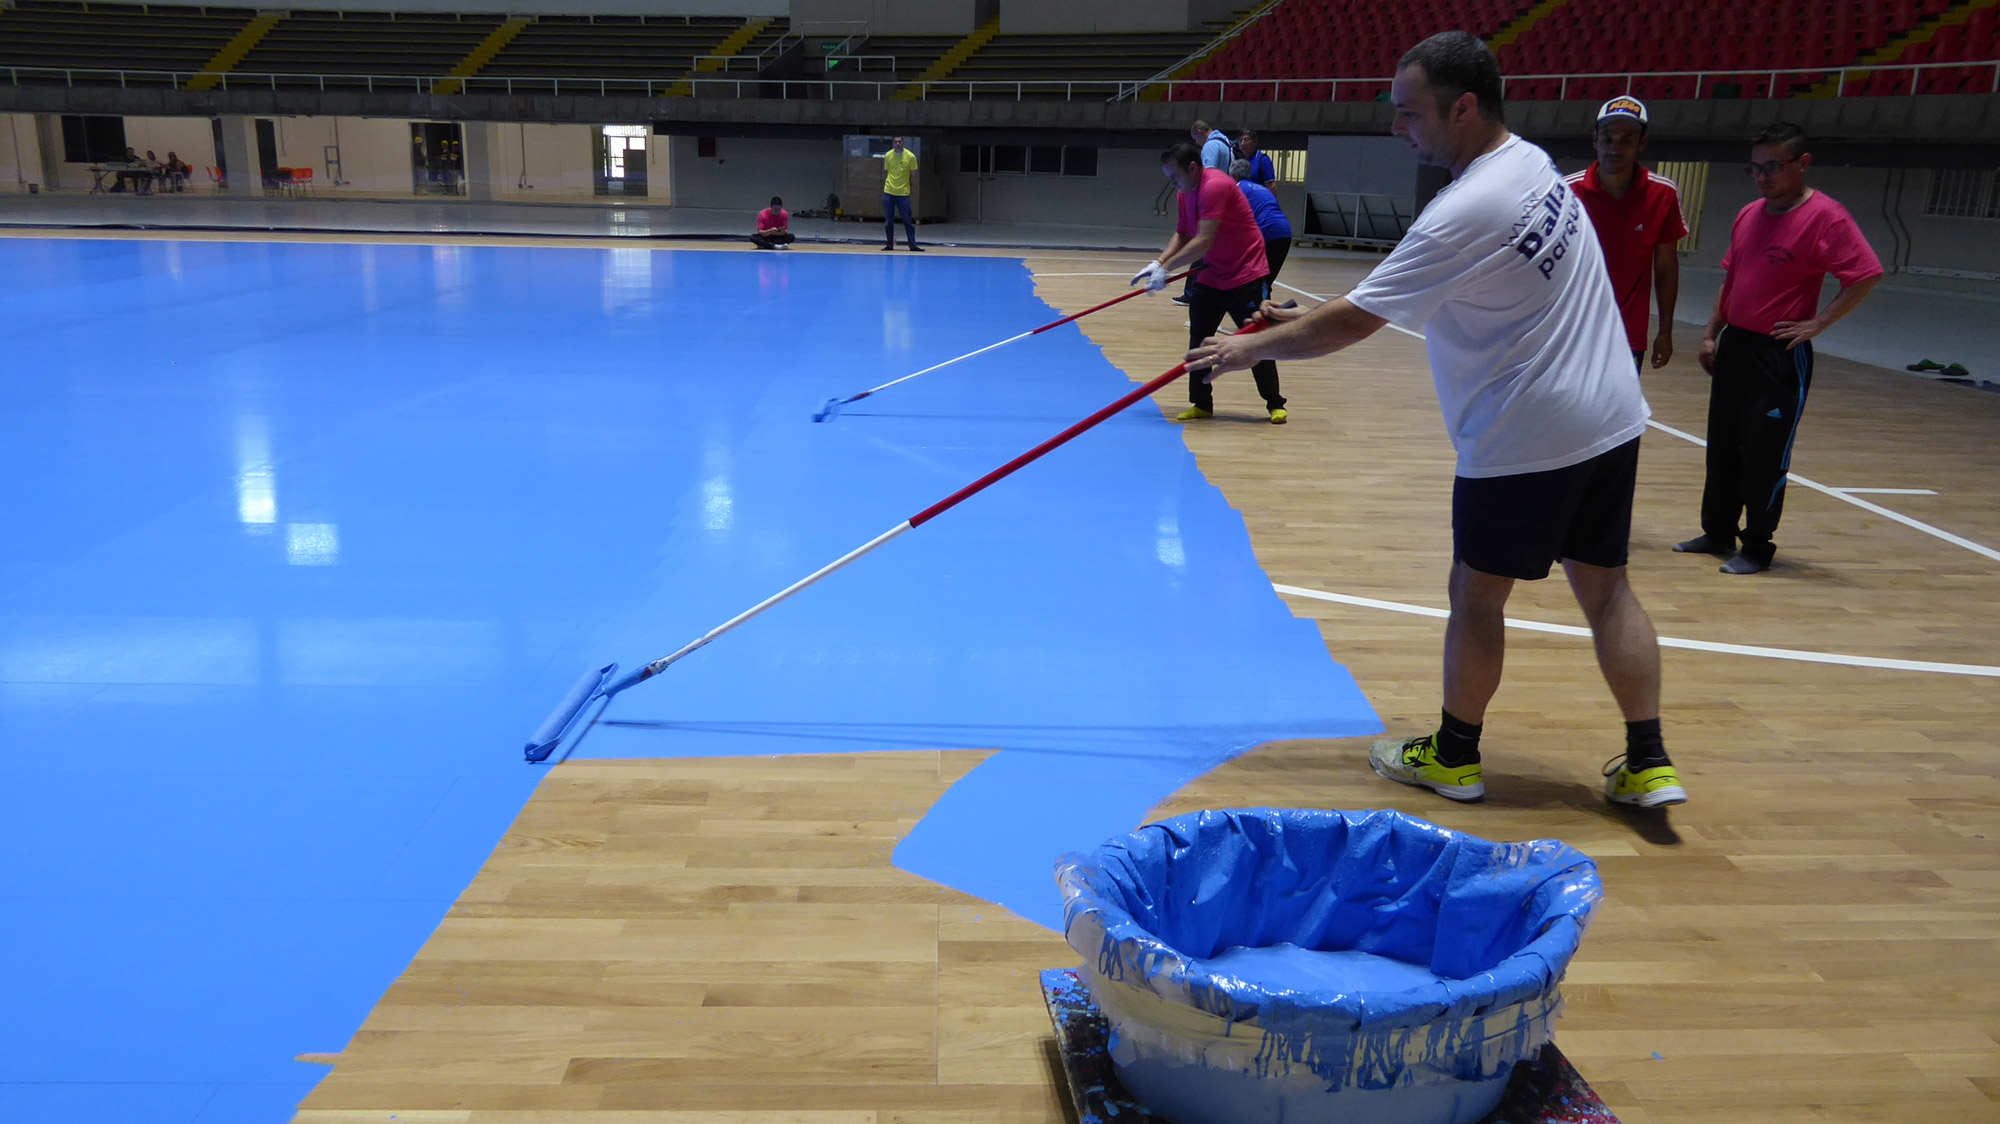 FIFA Futsal World Cup in Colombia with sports floor parquet Dalla Riva Italy